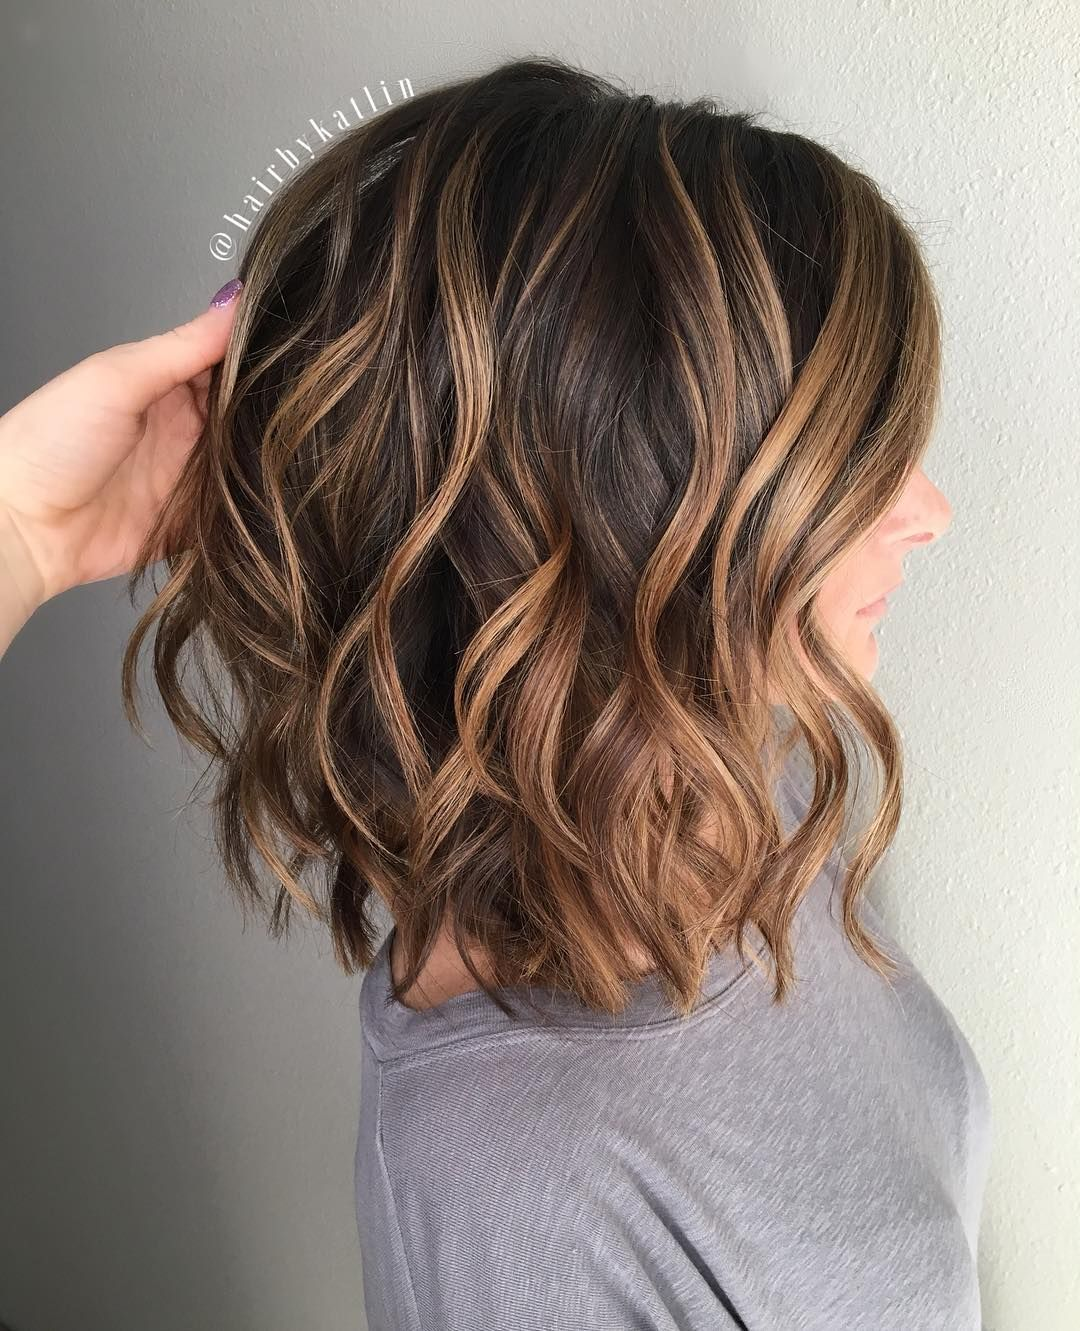 Getting Good Hair Without Breaking The Bank Short Hair Pinterest